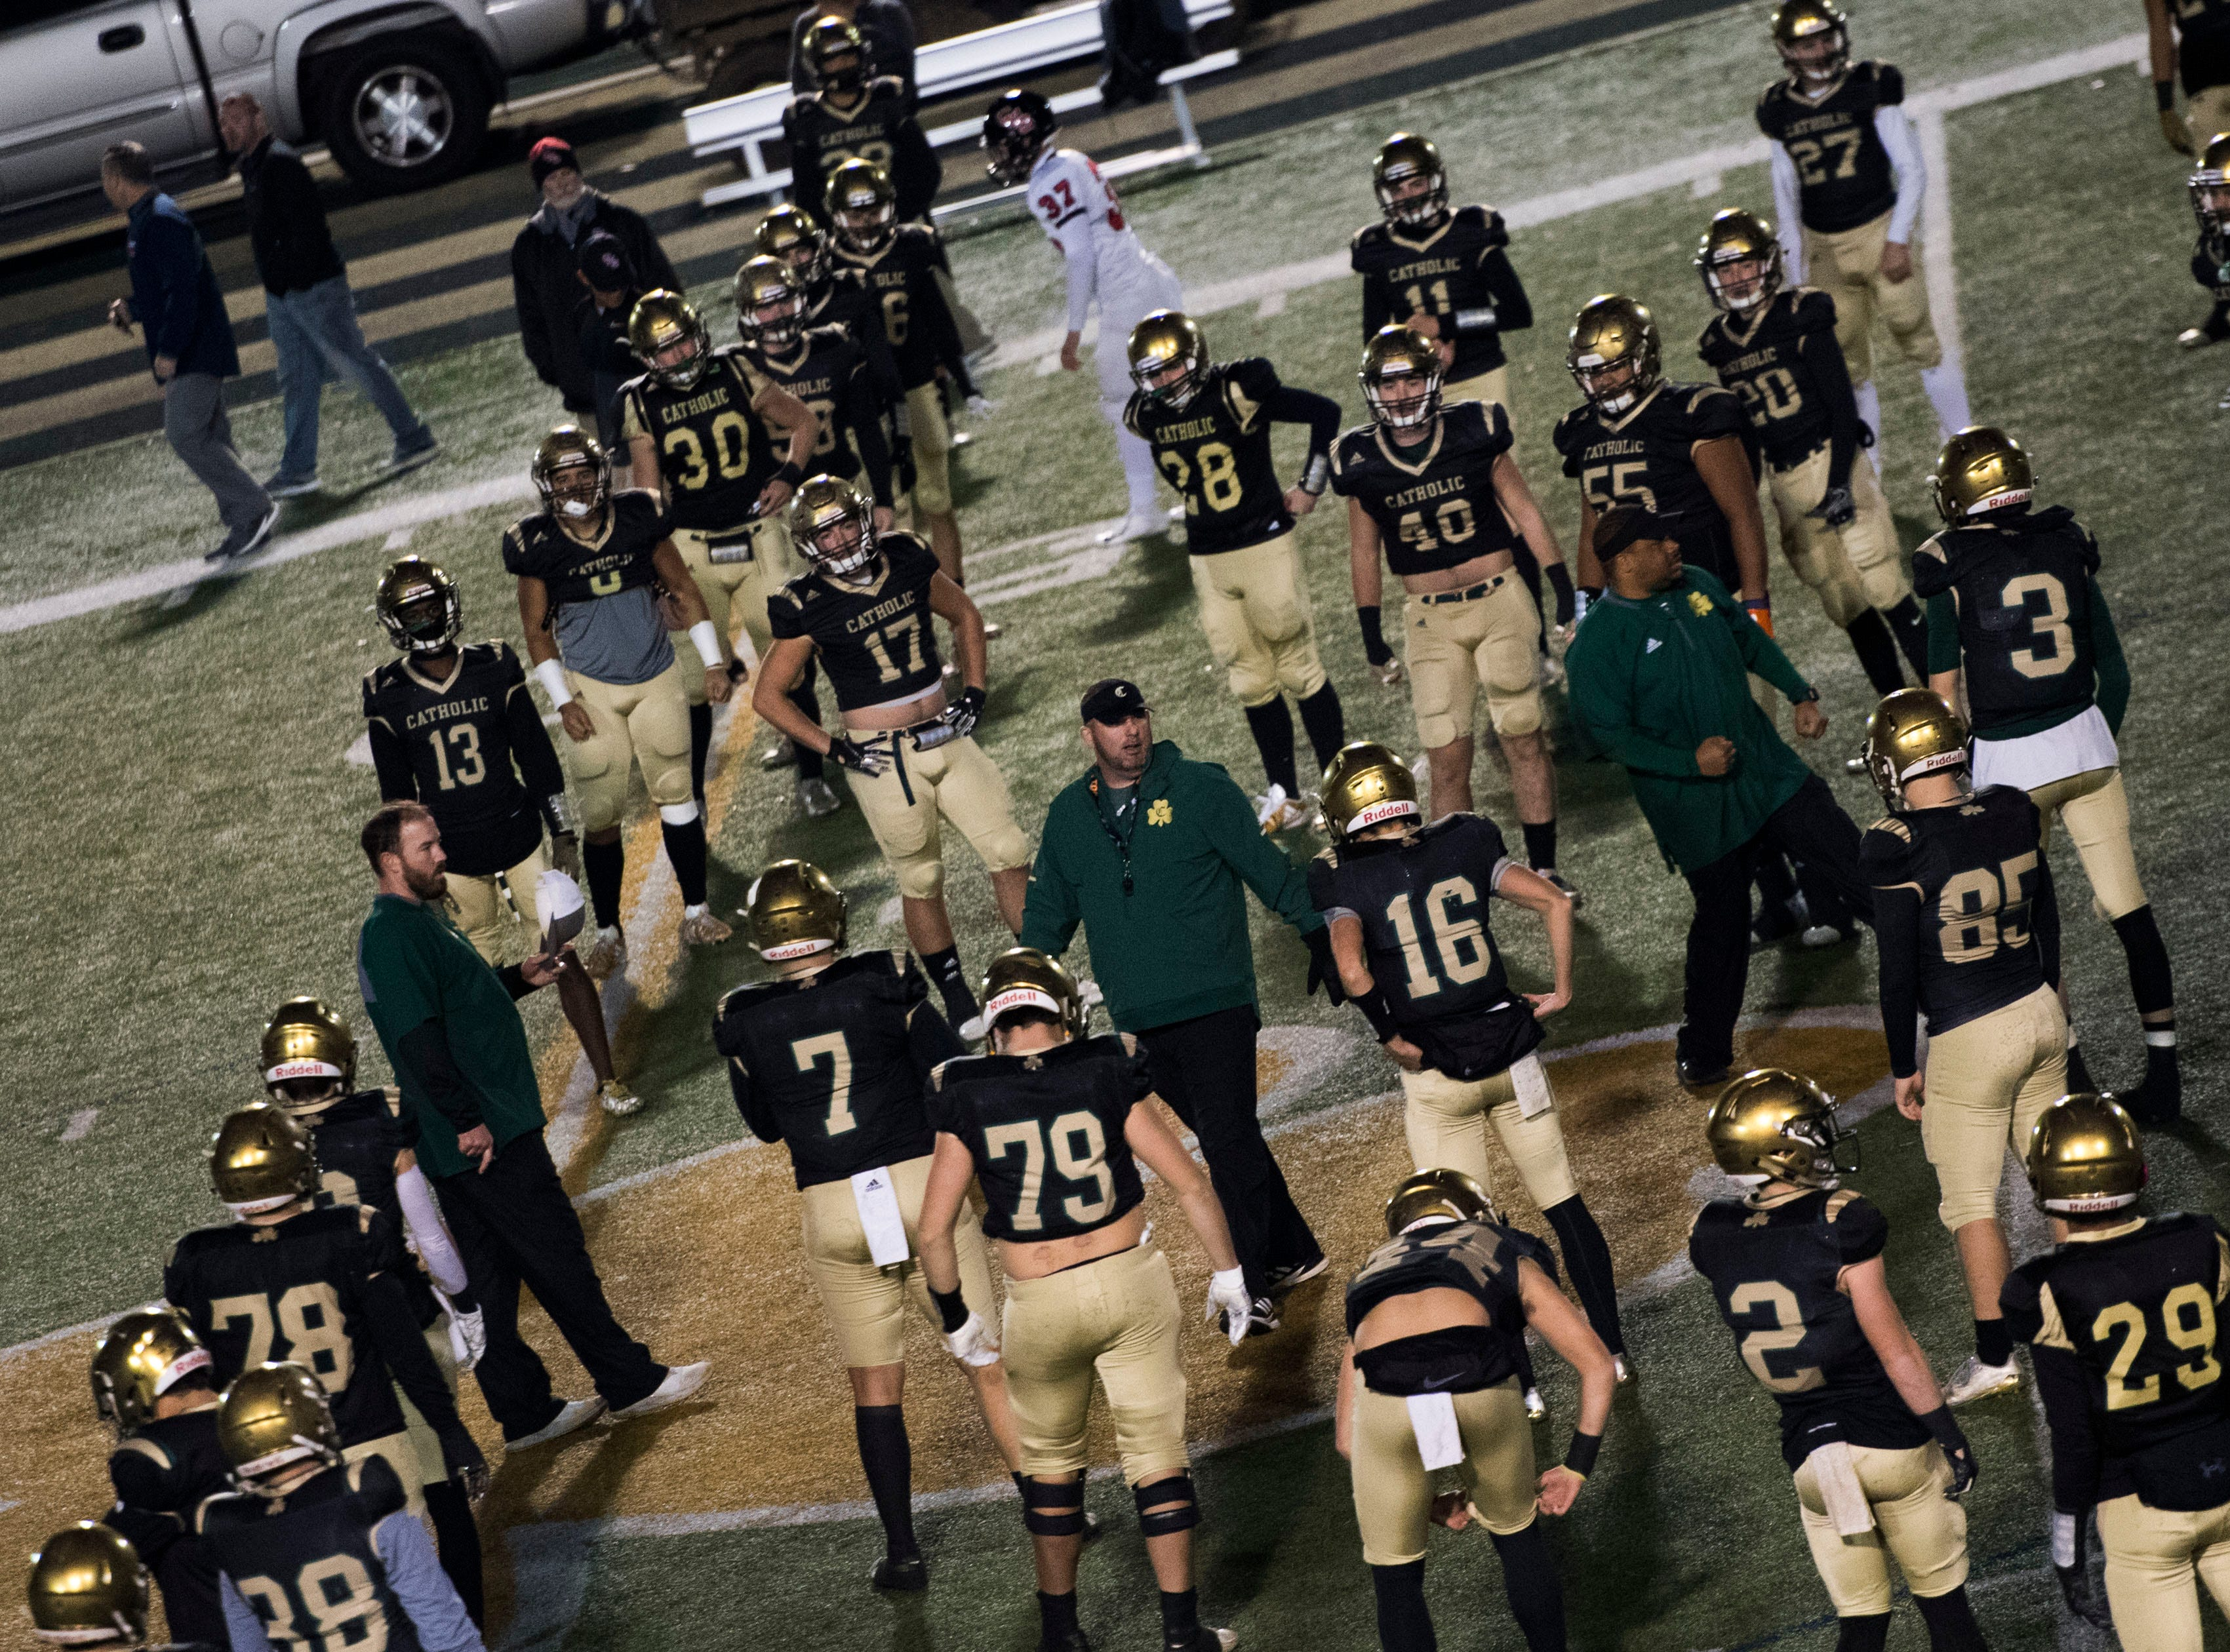 Catholic players warm up on the field before a TSSAA high school football semifinal game between Catholic and Central at Catholic Friday, Nov. 23, 2018.